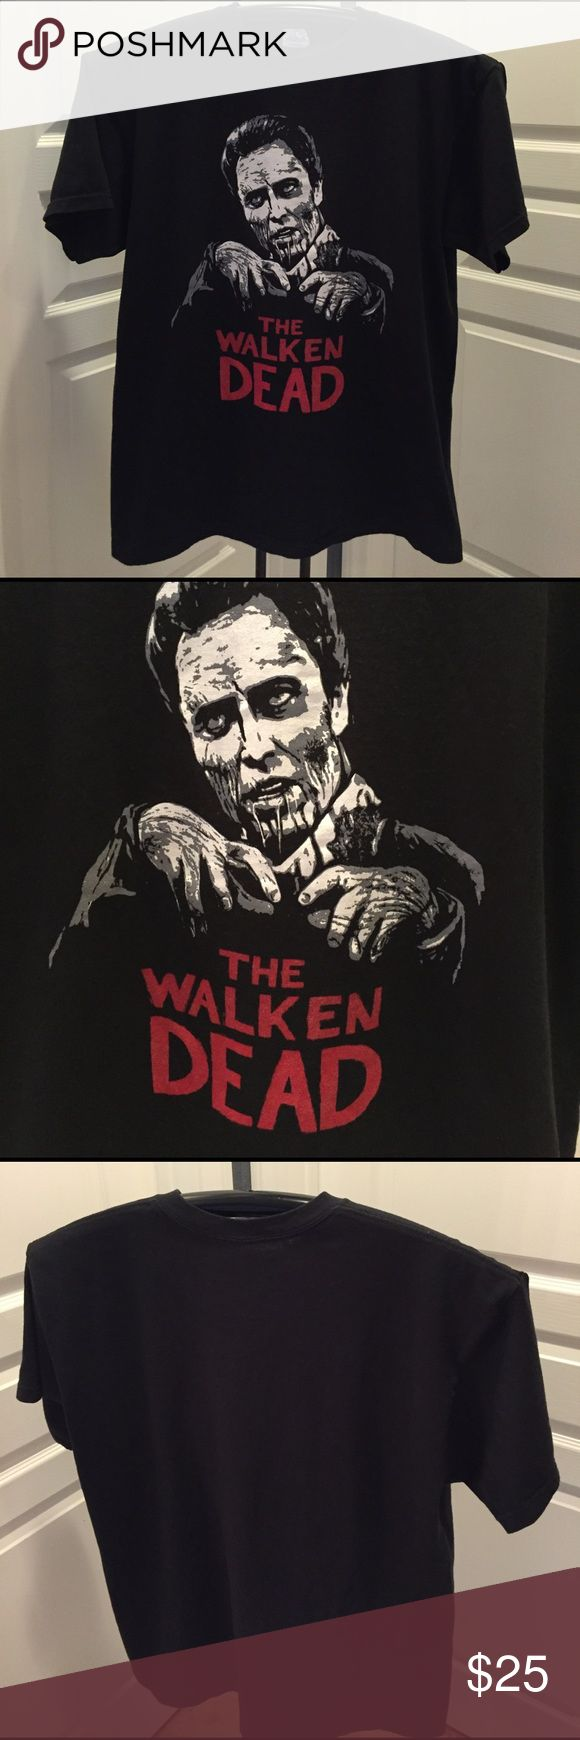 The Walken Dead T-Shirt Great Christopher Walken spoof T-Shirt of the Walking Dead TV show in Size XL....good condition Delta Shirts Tees - Short Sleeve